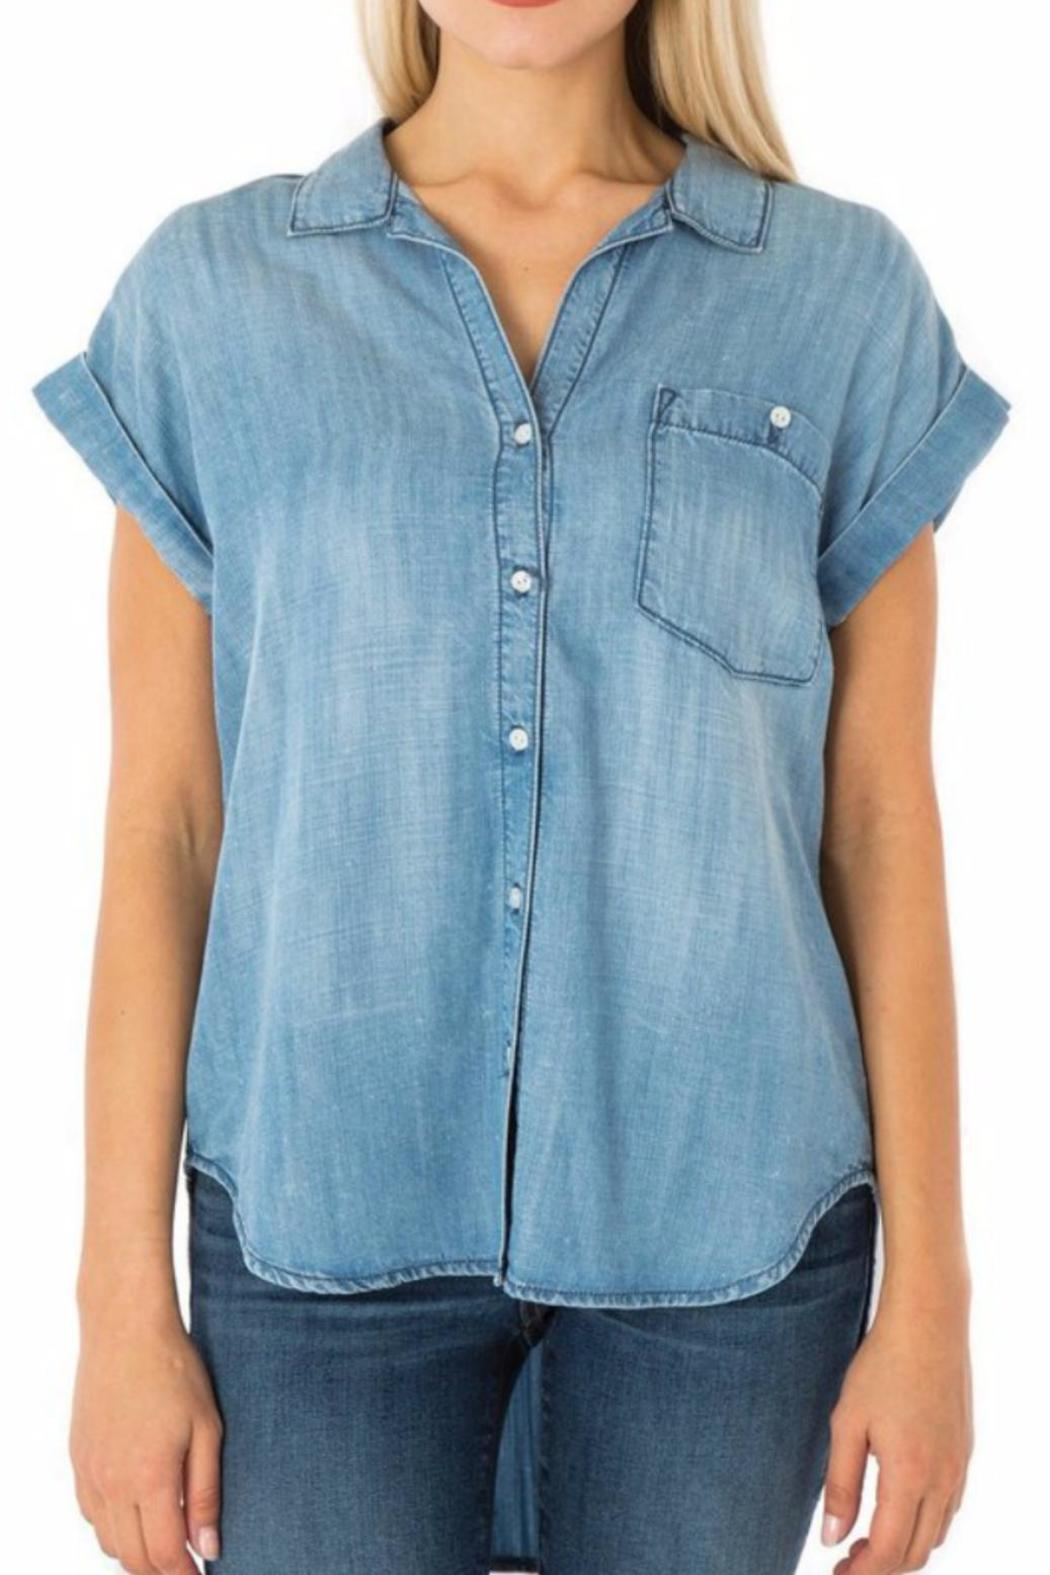 Sneak peek milly chambray top from florida by goldfinch for Chambray top